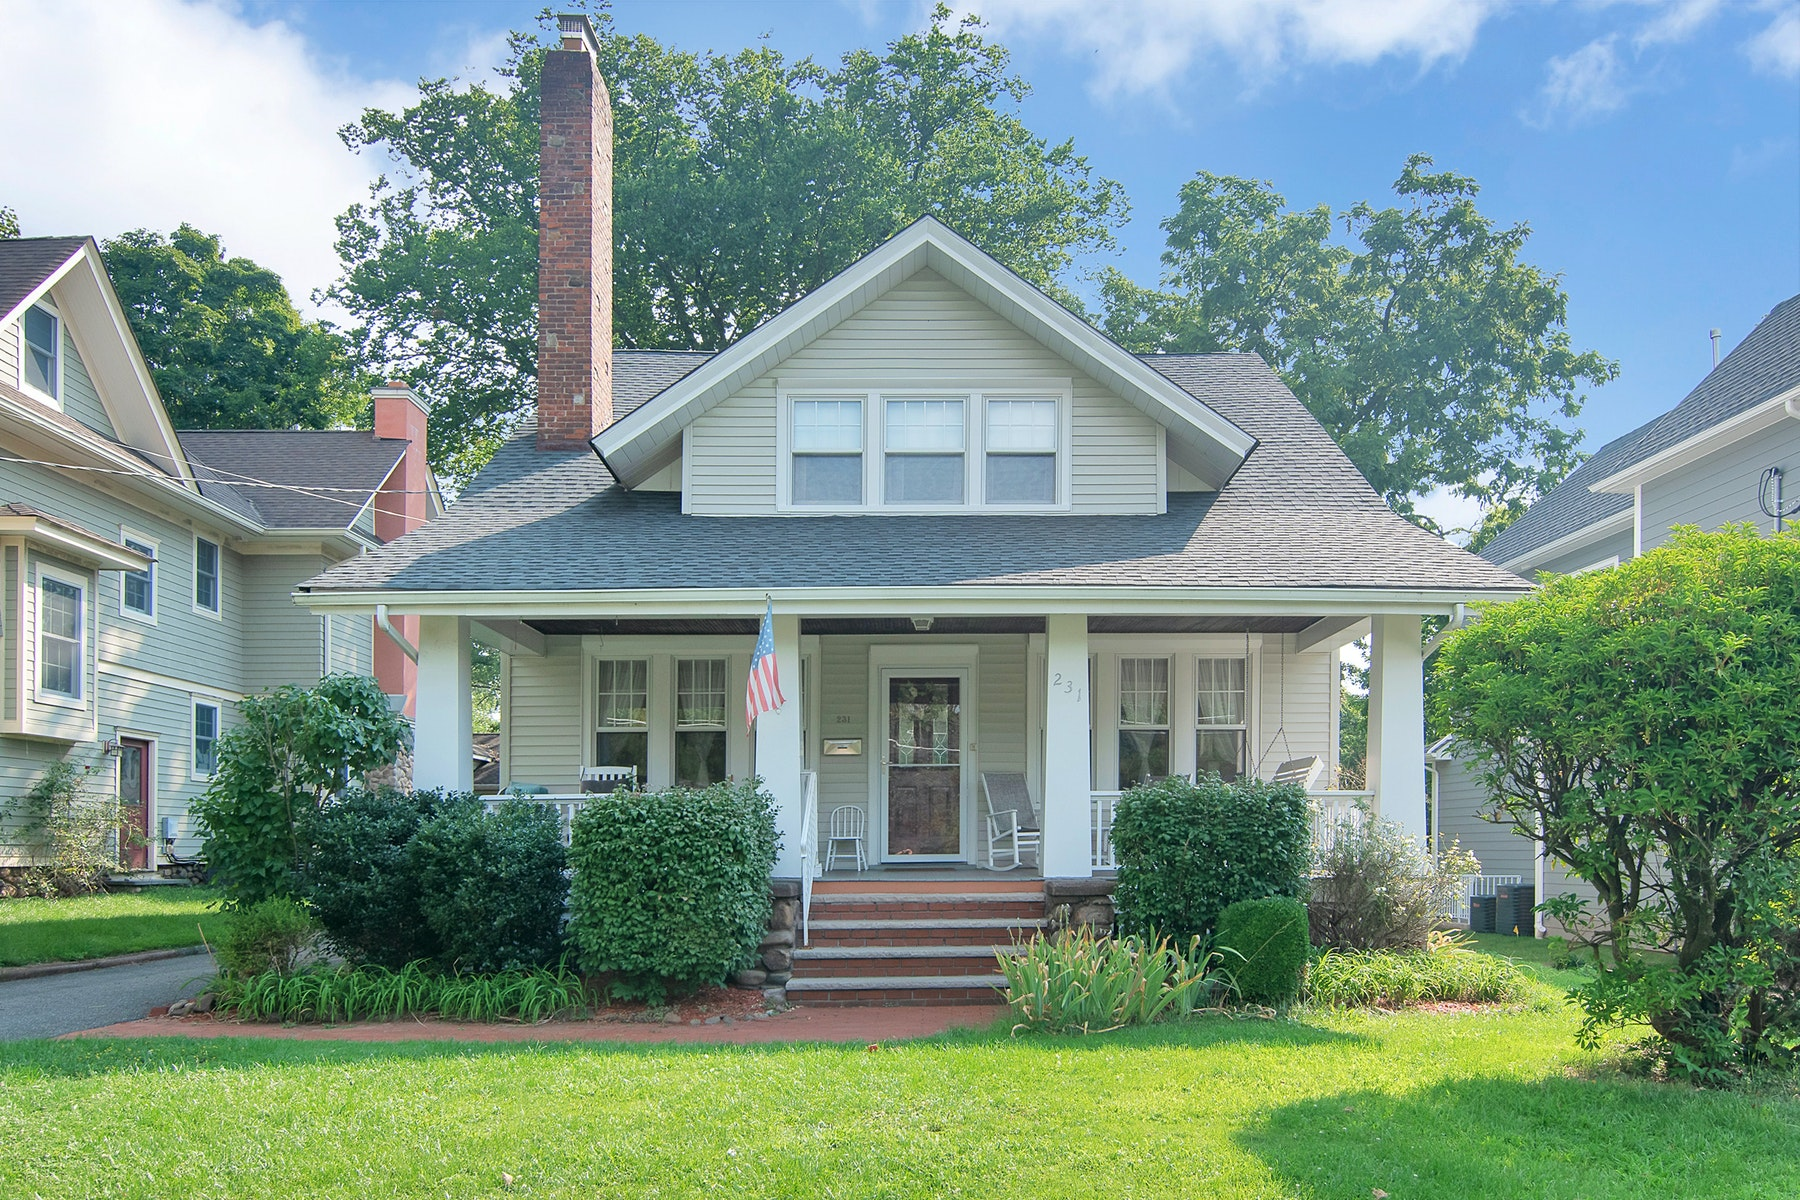 Single Family Homes for Sale at Location!Location!Location! 231 Hamilton Ave., Glen Rock, New Jersey 07452 United States